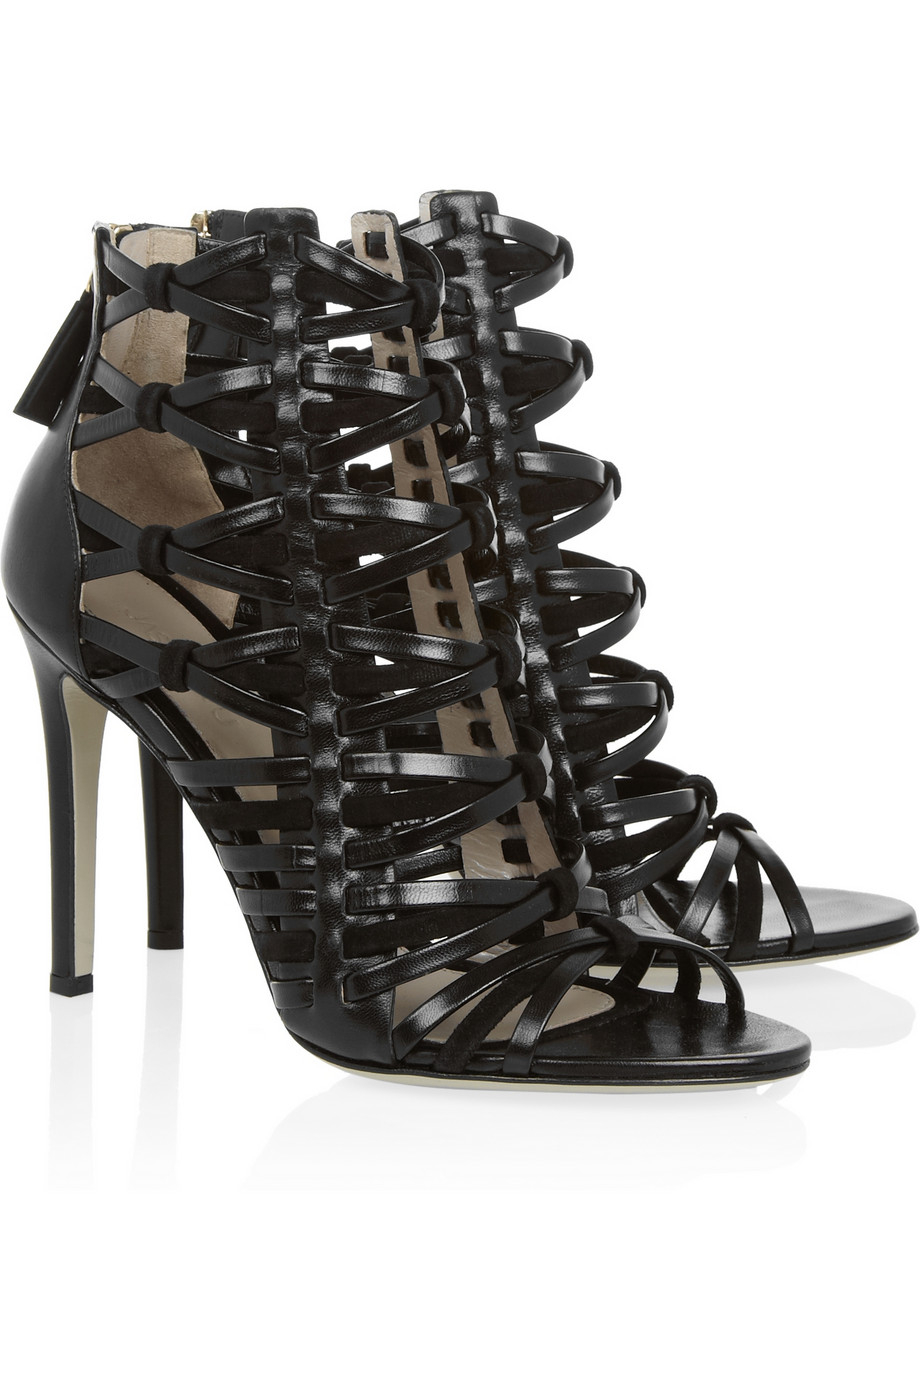 Jason Wu Leather Cage Sandals clearance cost 1inoUQ